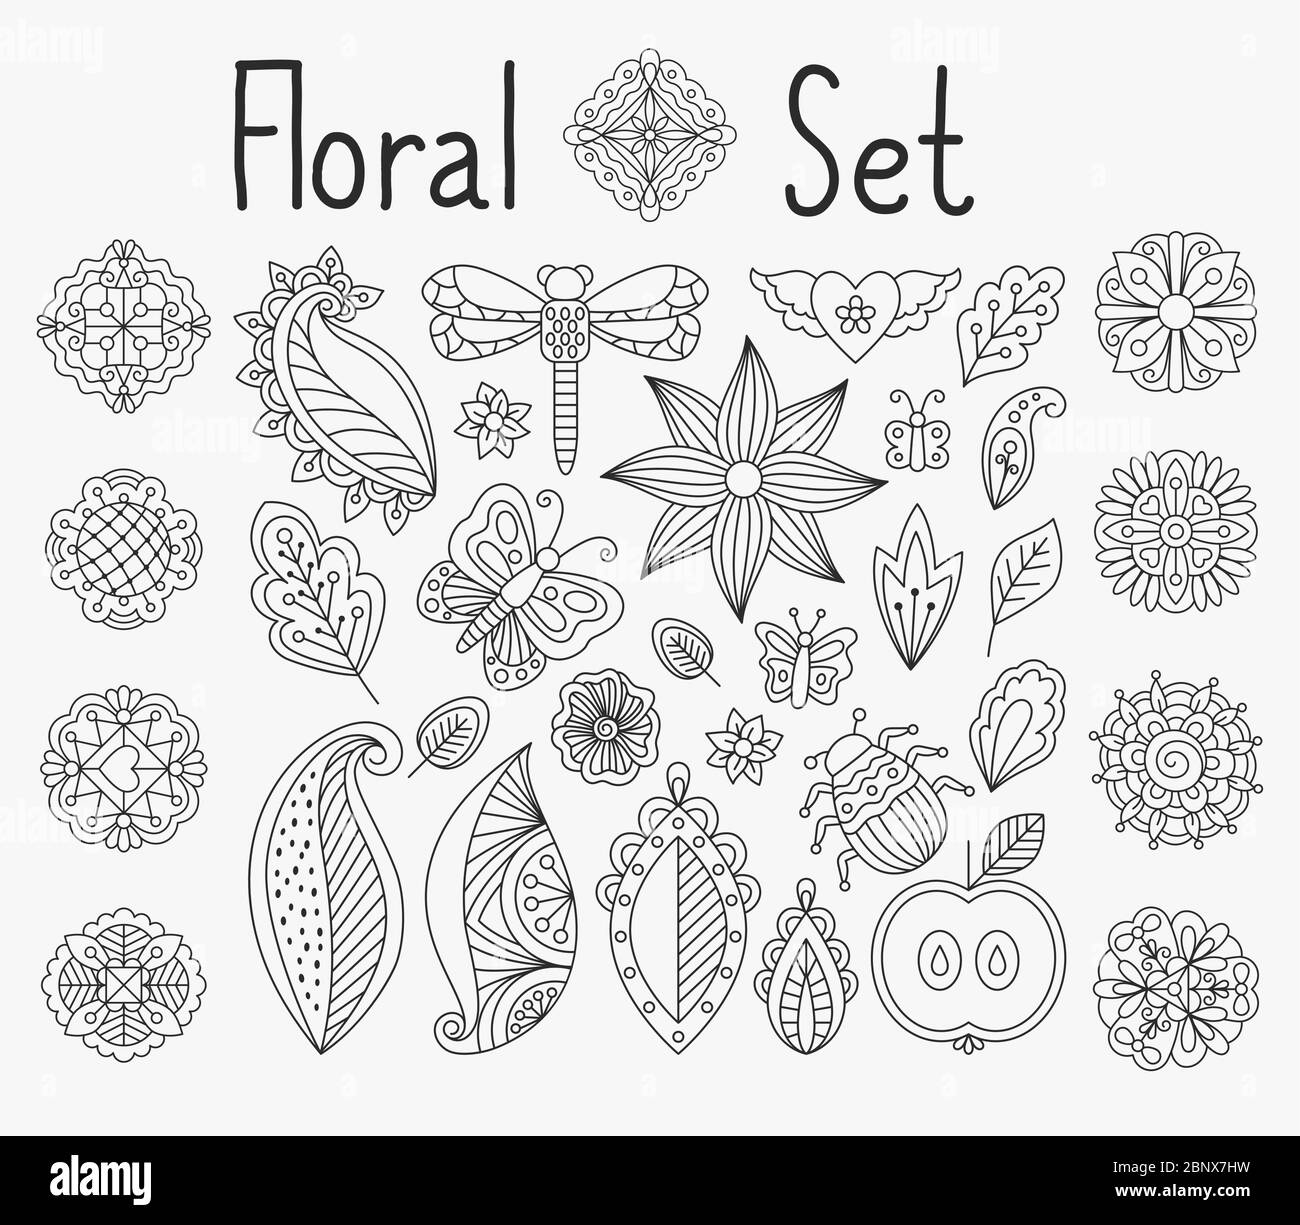 Vector Floral Set With Leaves And Herbs Bugs And Butterflies Hand Drawn Mandala Elements Stock Vector Image Art Alamy